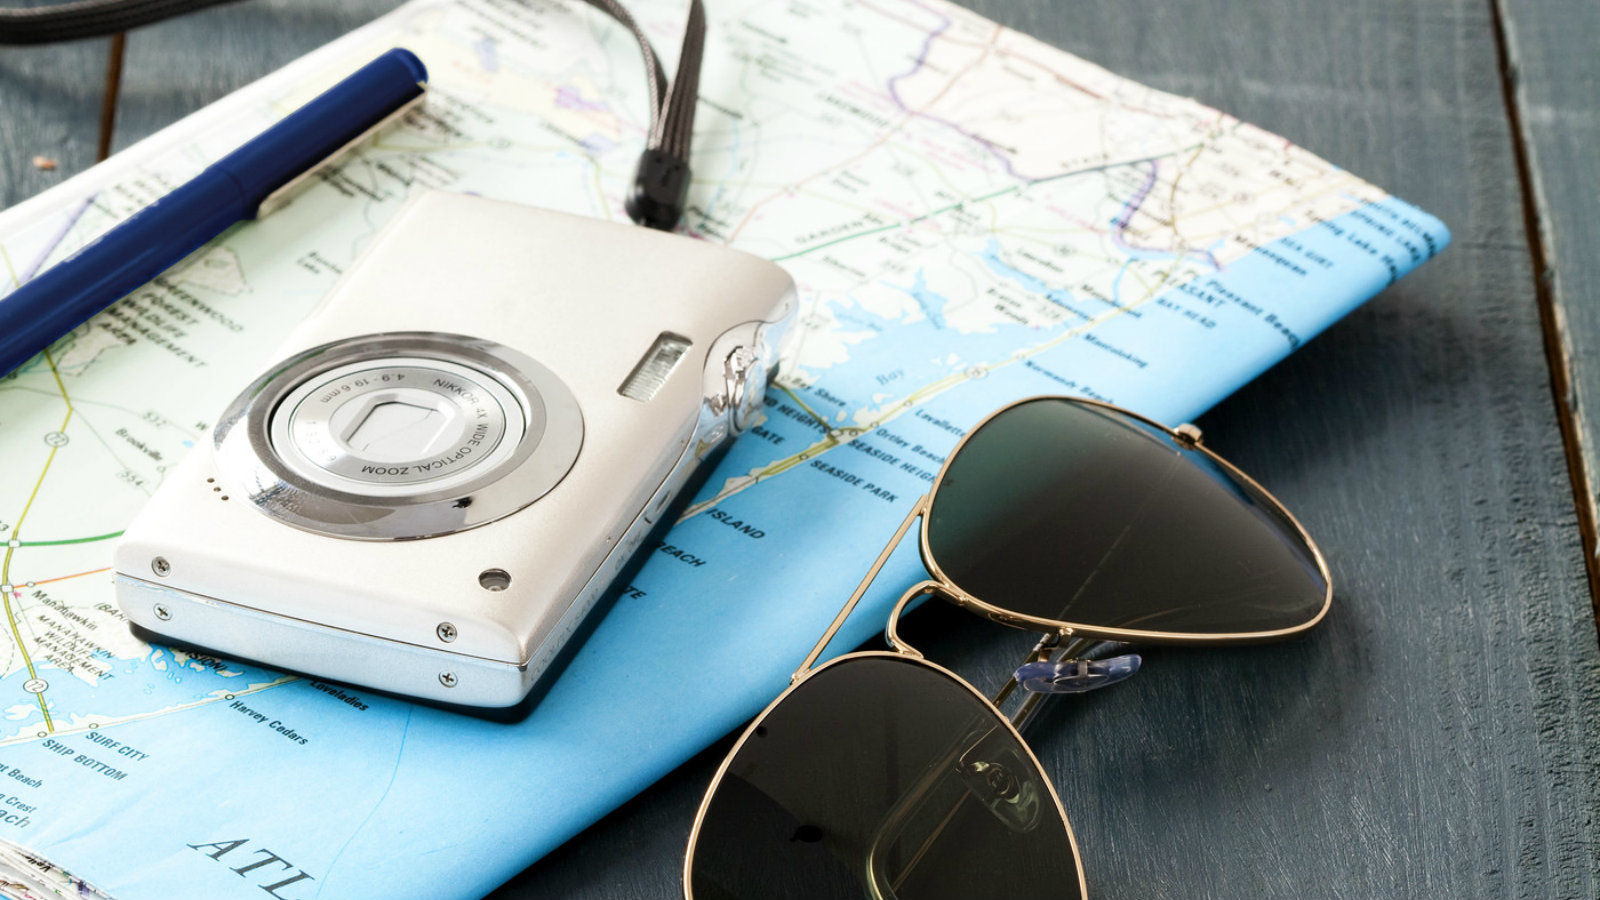 Newark Wedding Venues - Honeymoon